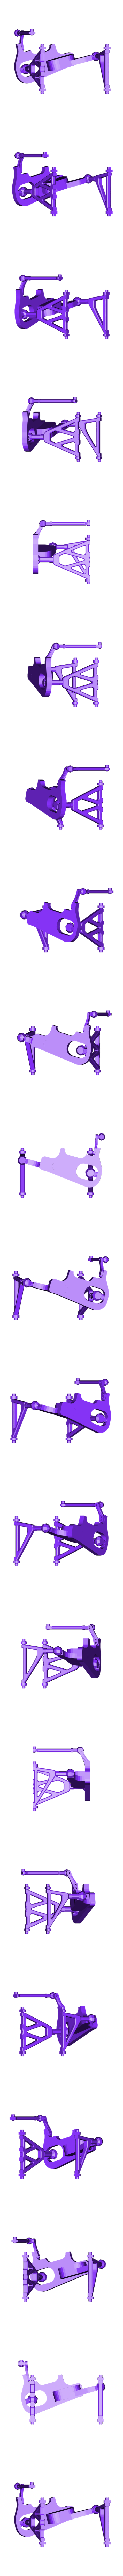 Violet velomobile. Download free d printer